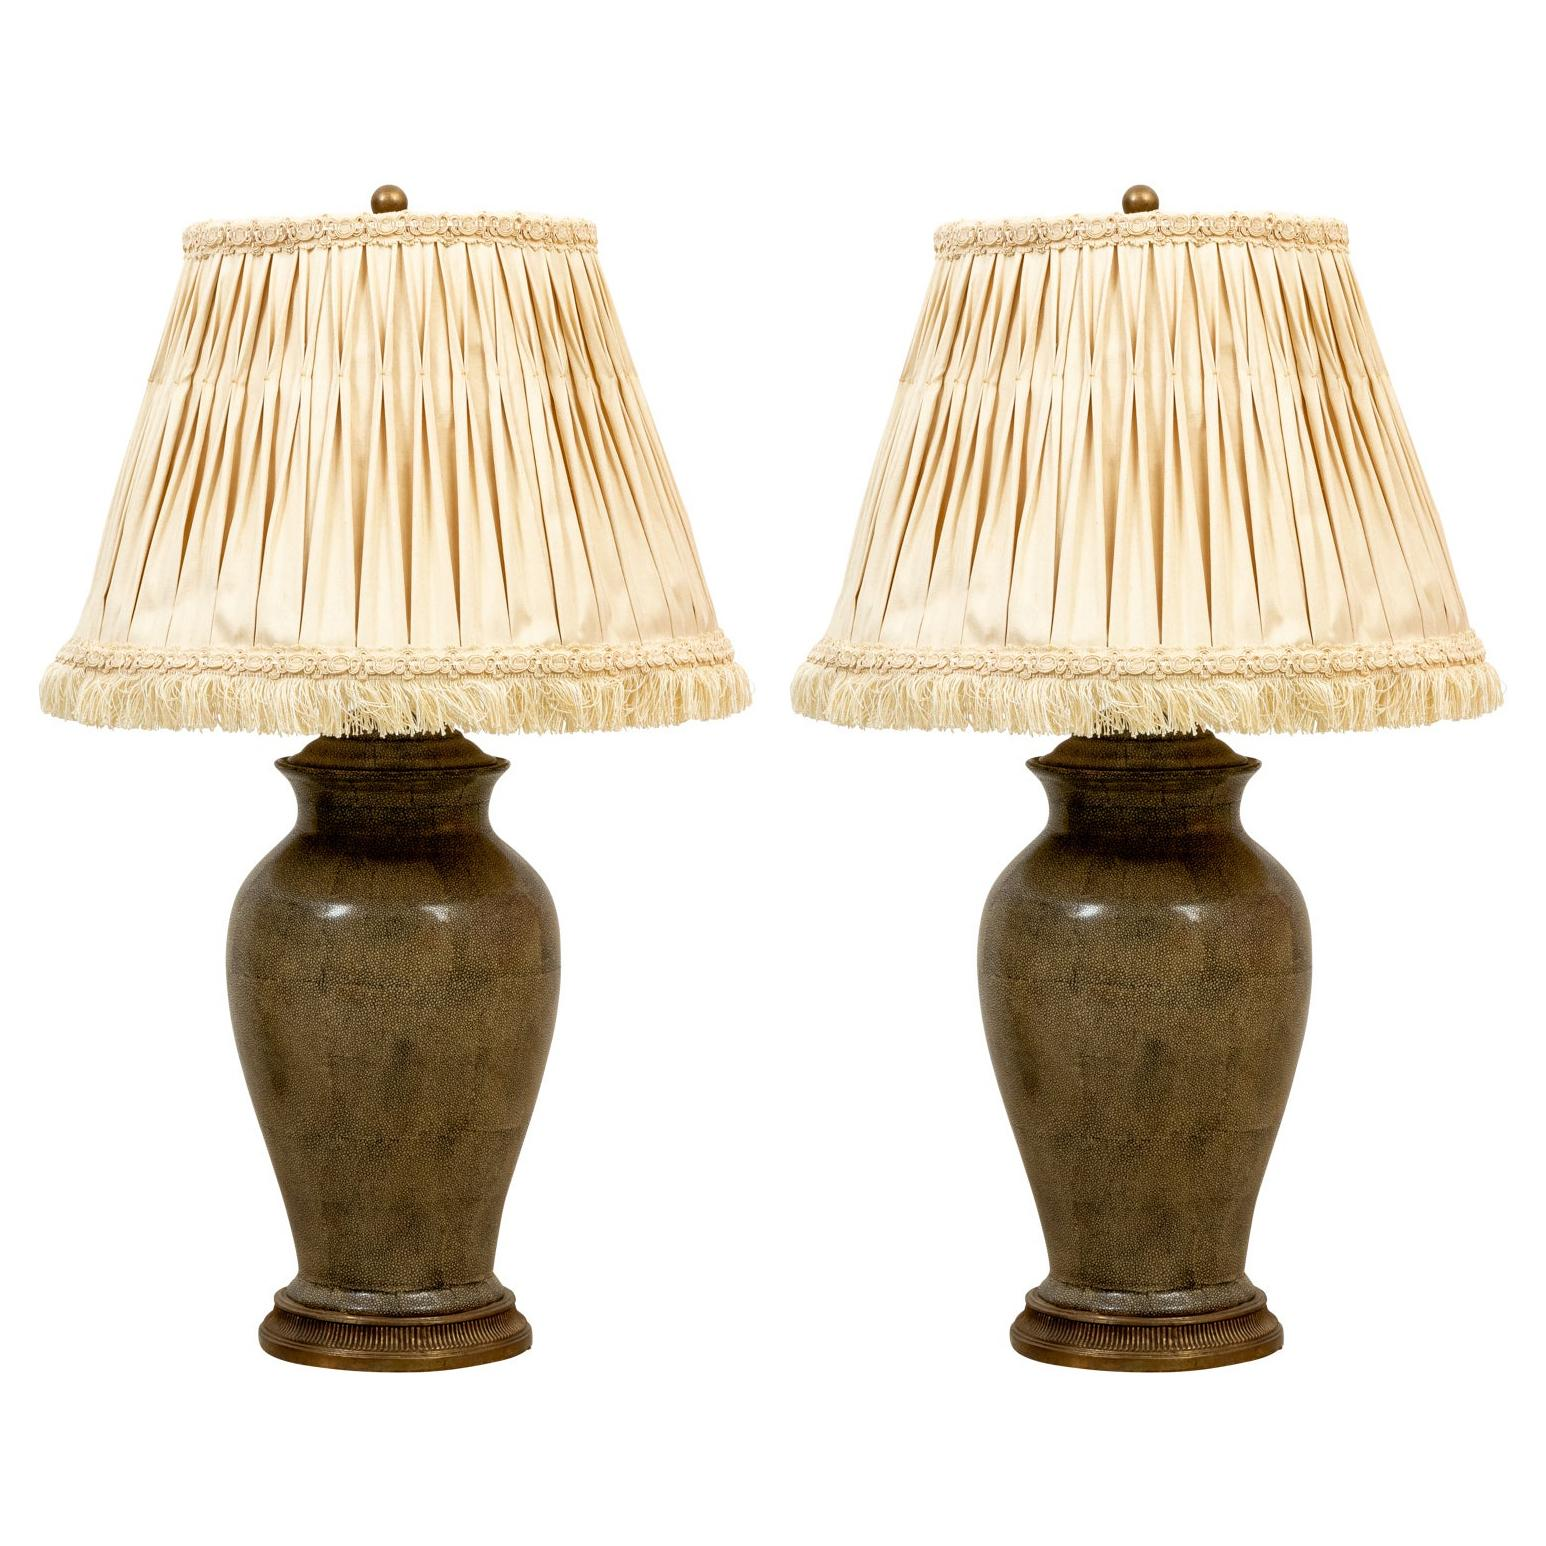 Pair of Faux Shagreen Lamps